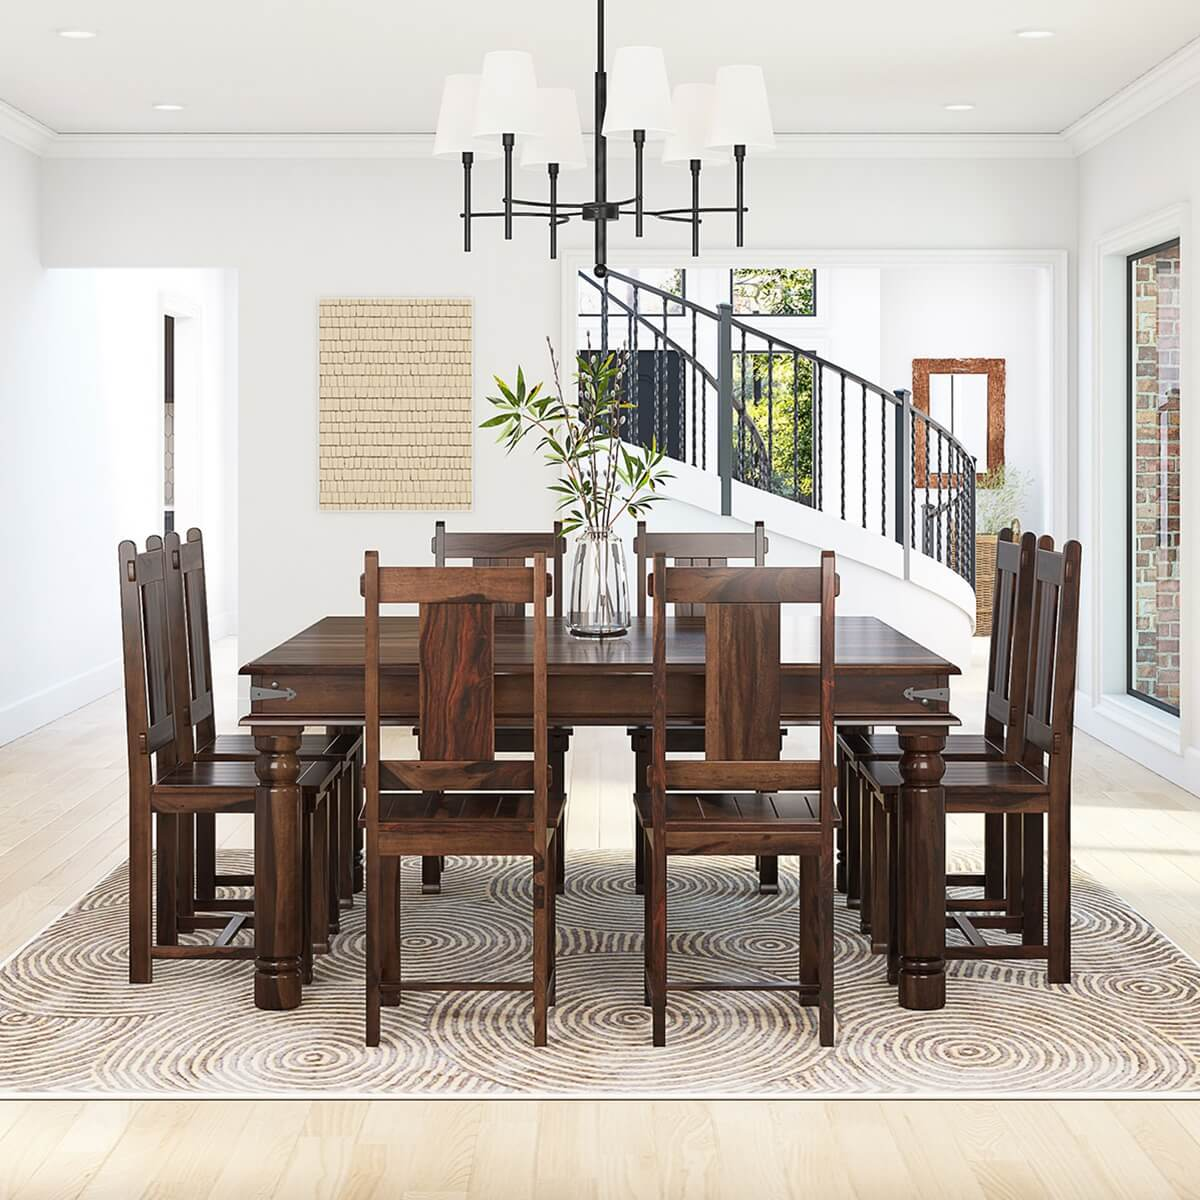 Rustic Square Solid Wood Furniture Large Dining Room Table Chair Set